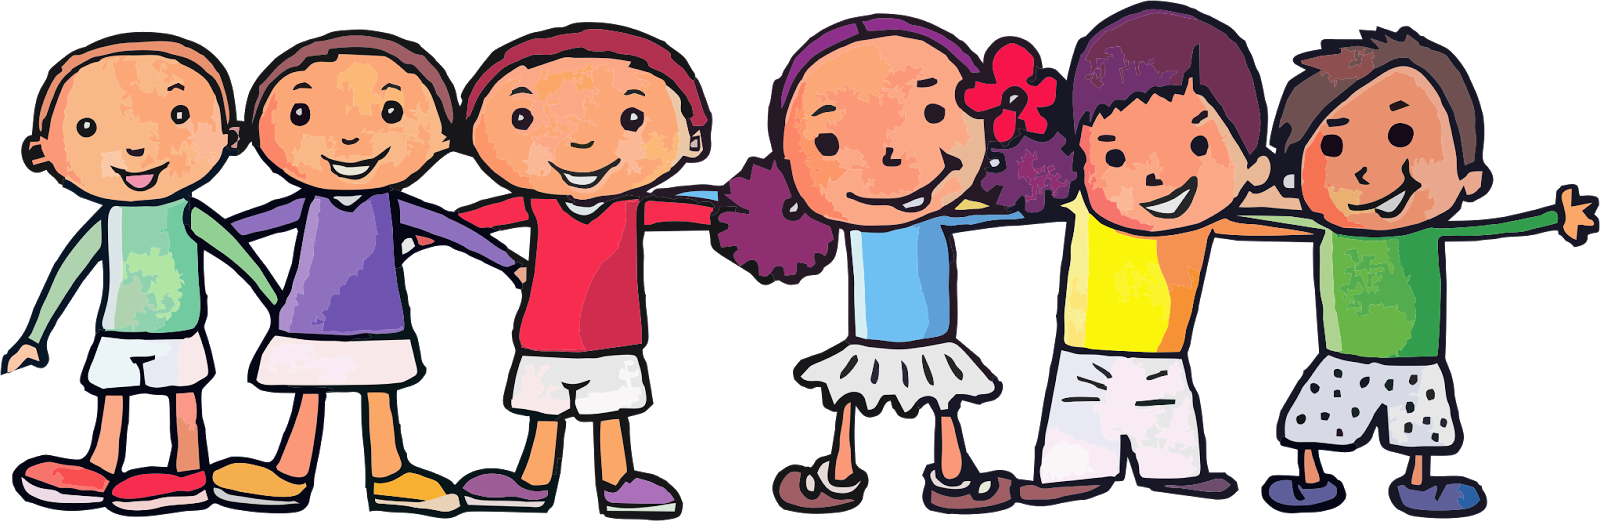 happy kids clipart | Hostted